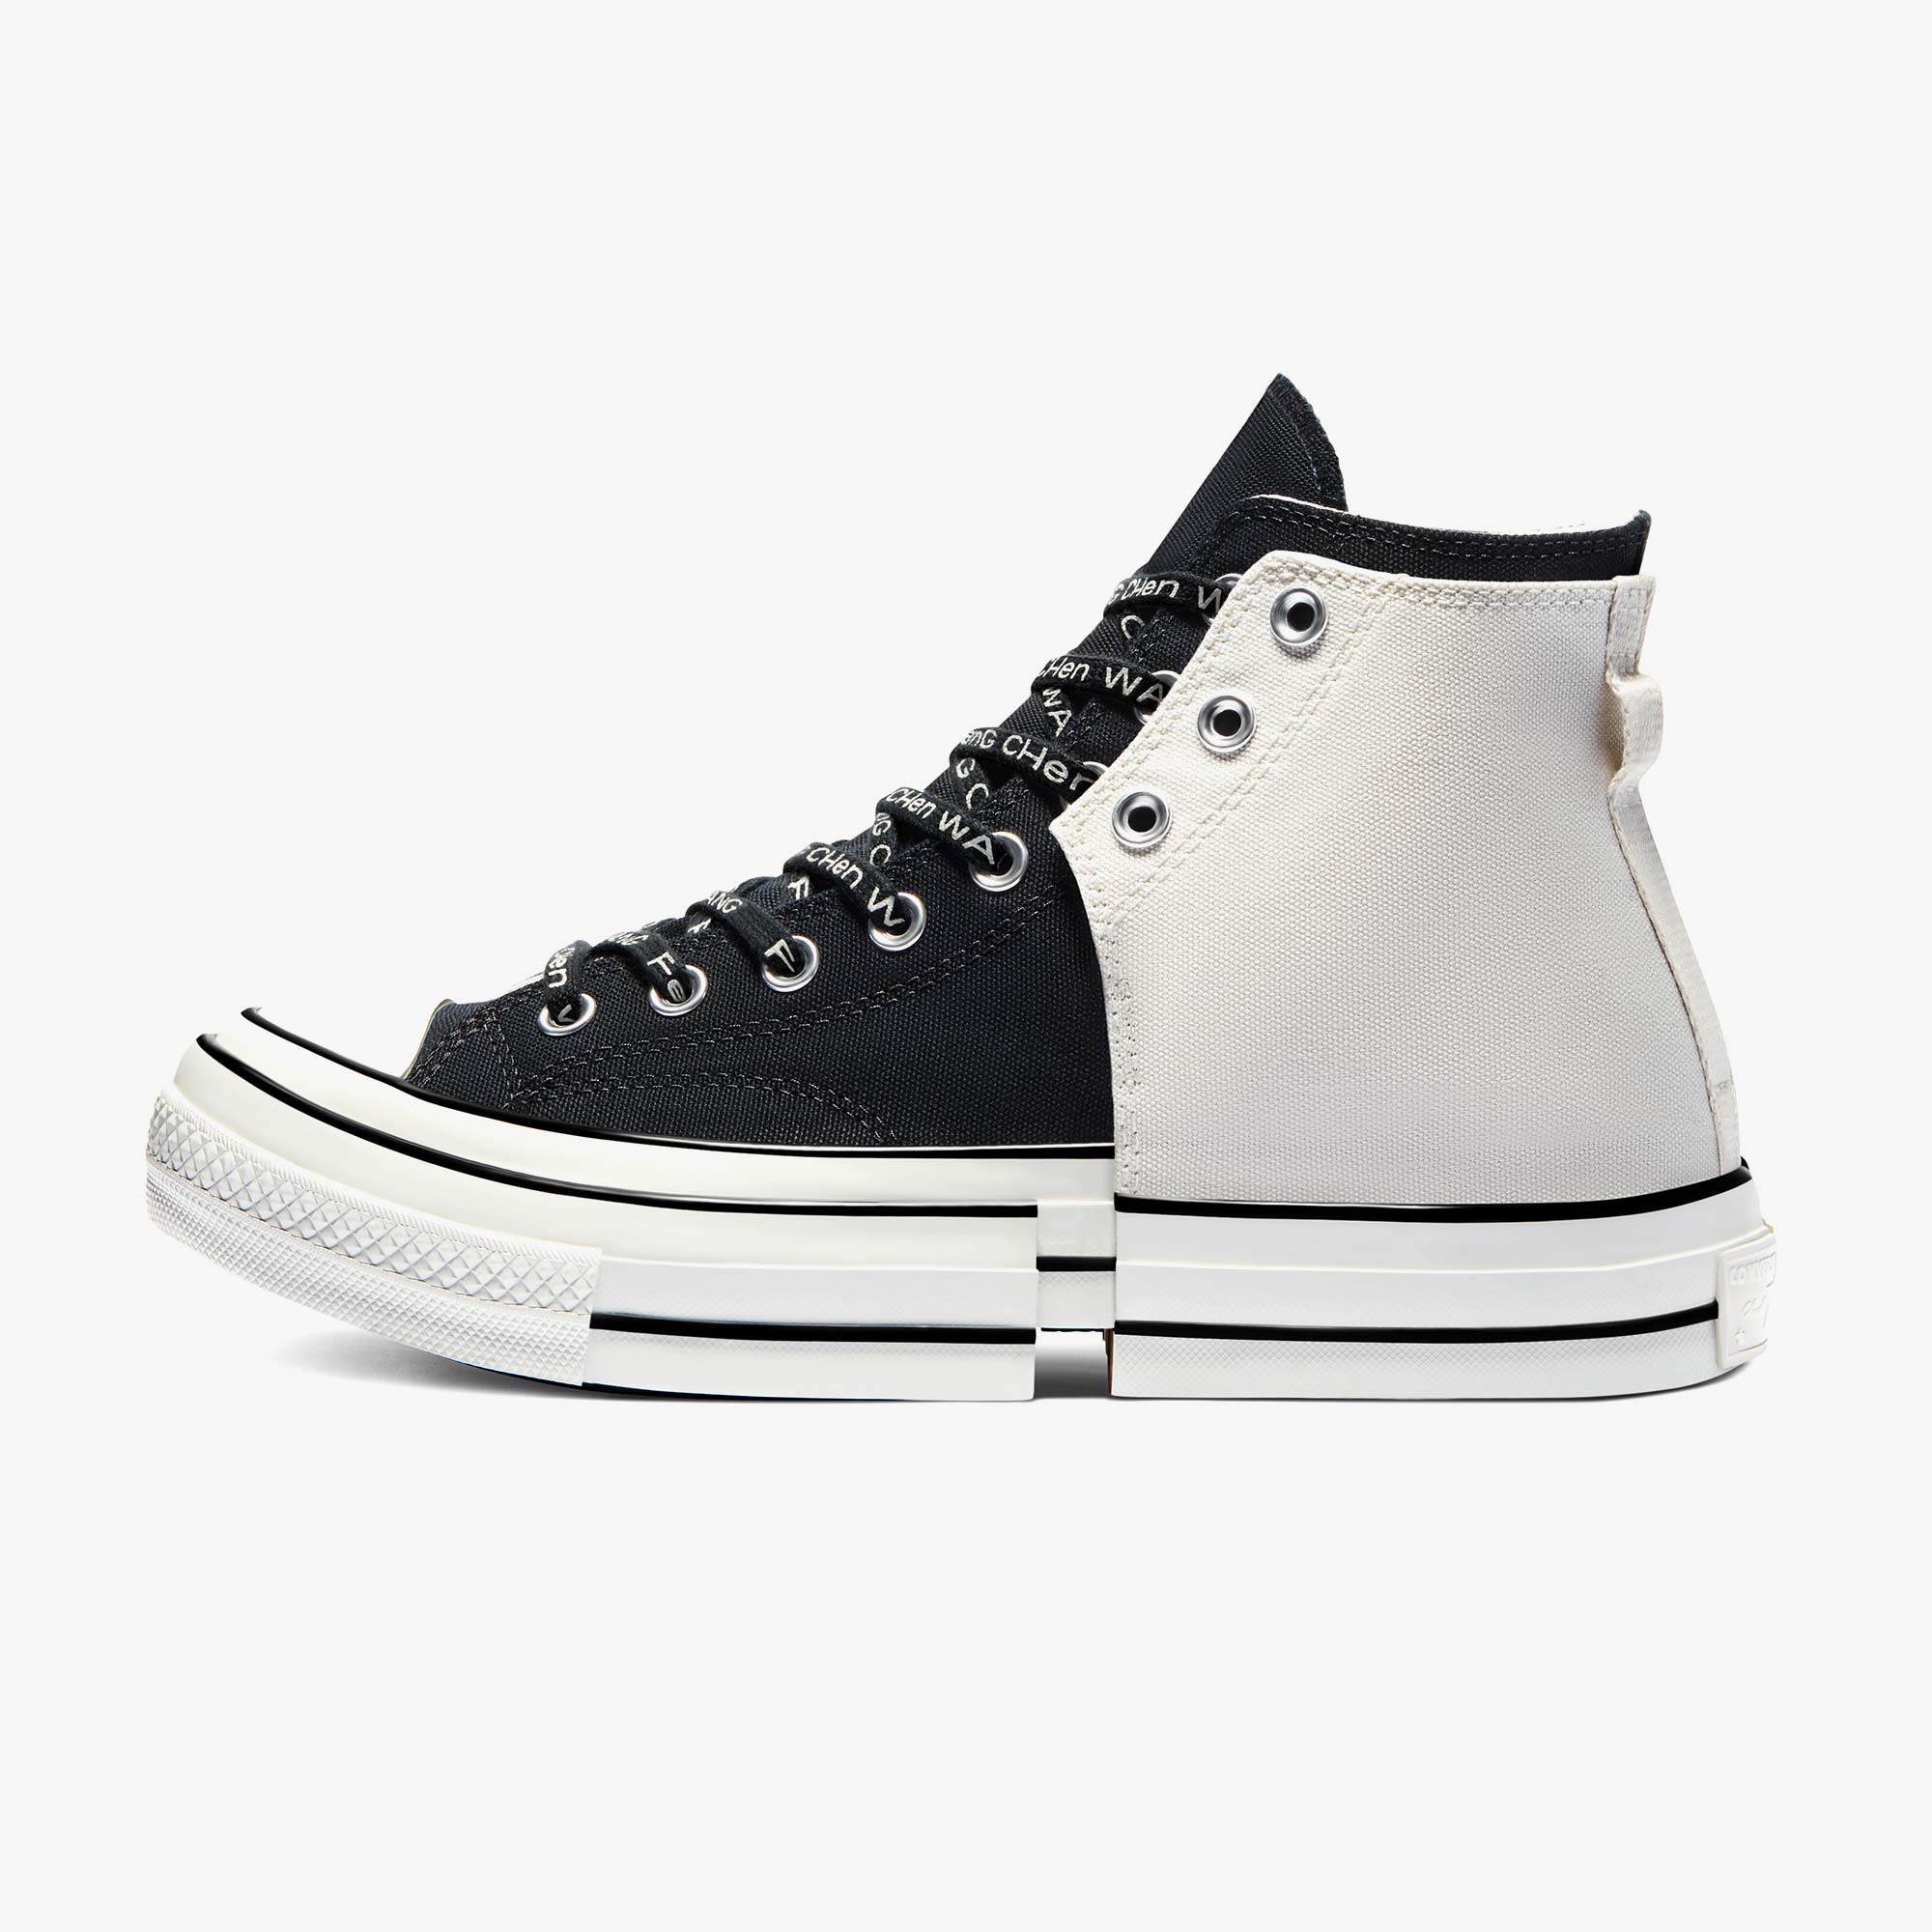 Converse Converse x Feng Chen Wang 2 In 1 Chuck Taylor 70 Hi - Ivory 7